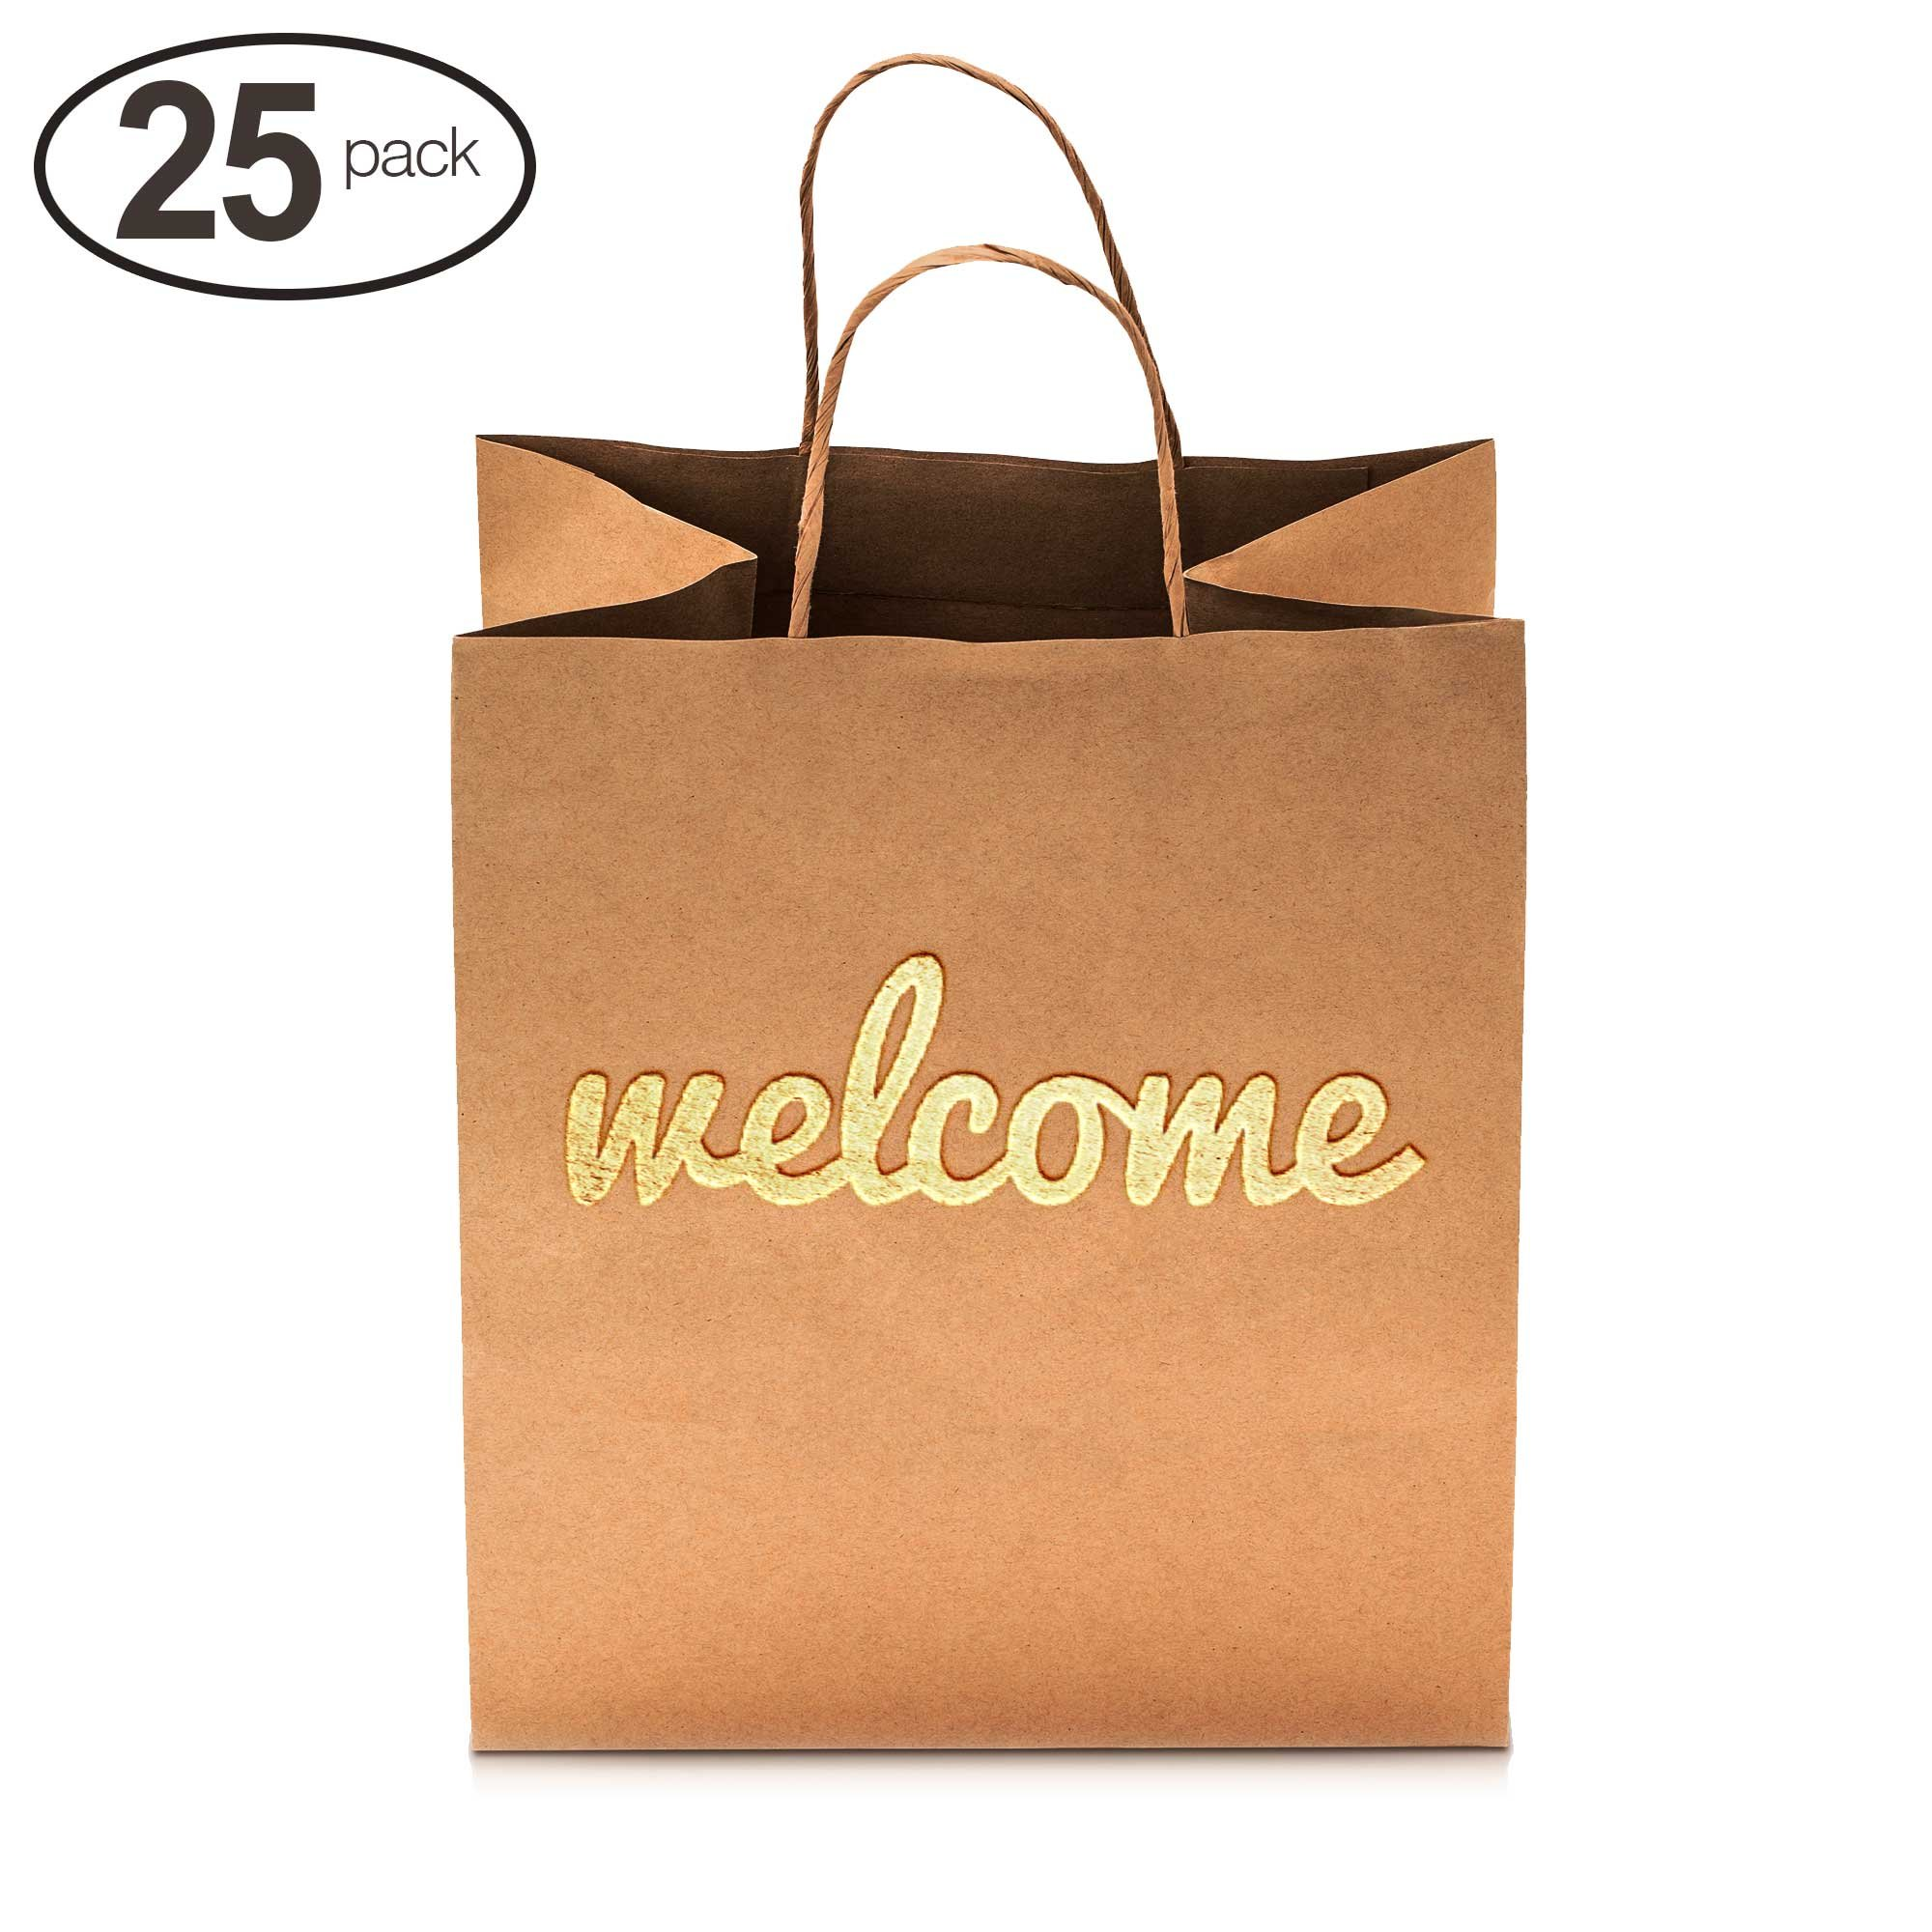 Merry Expressions - Wedding Welcome Gift Bags - Luxury 25 Pack - Size 10.5'' x 8.25'' - Premium Gold Welcome Printed on Both Sides - Cute High Quality Bags Perfect for Your Bridesmaids and Party Guests